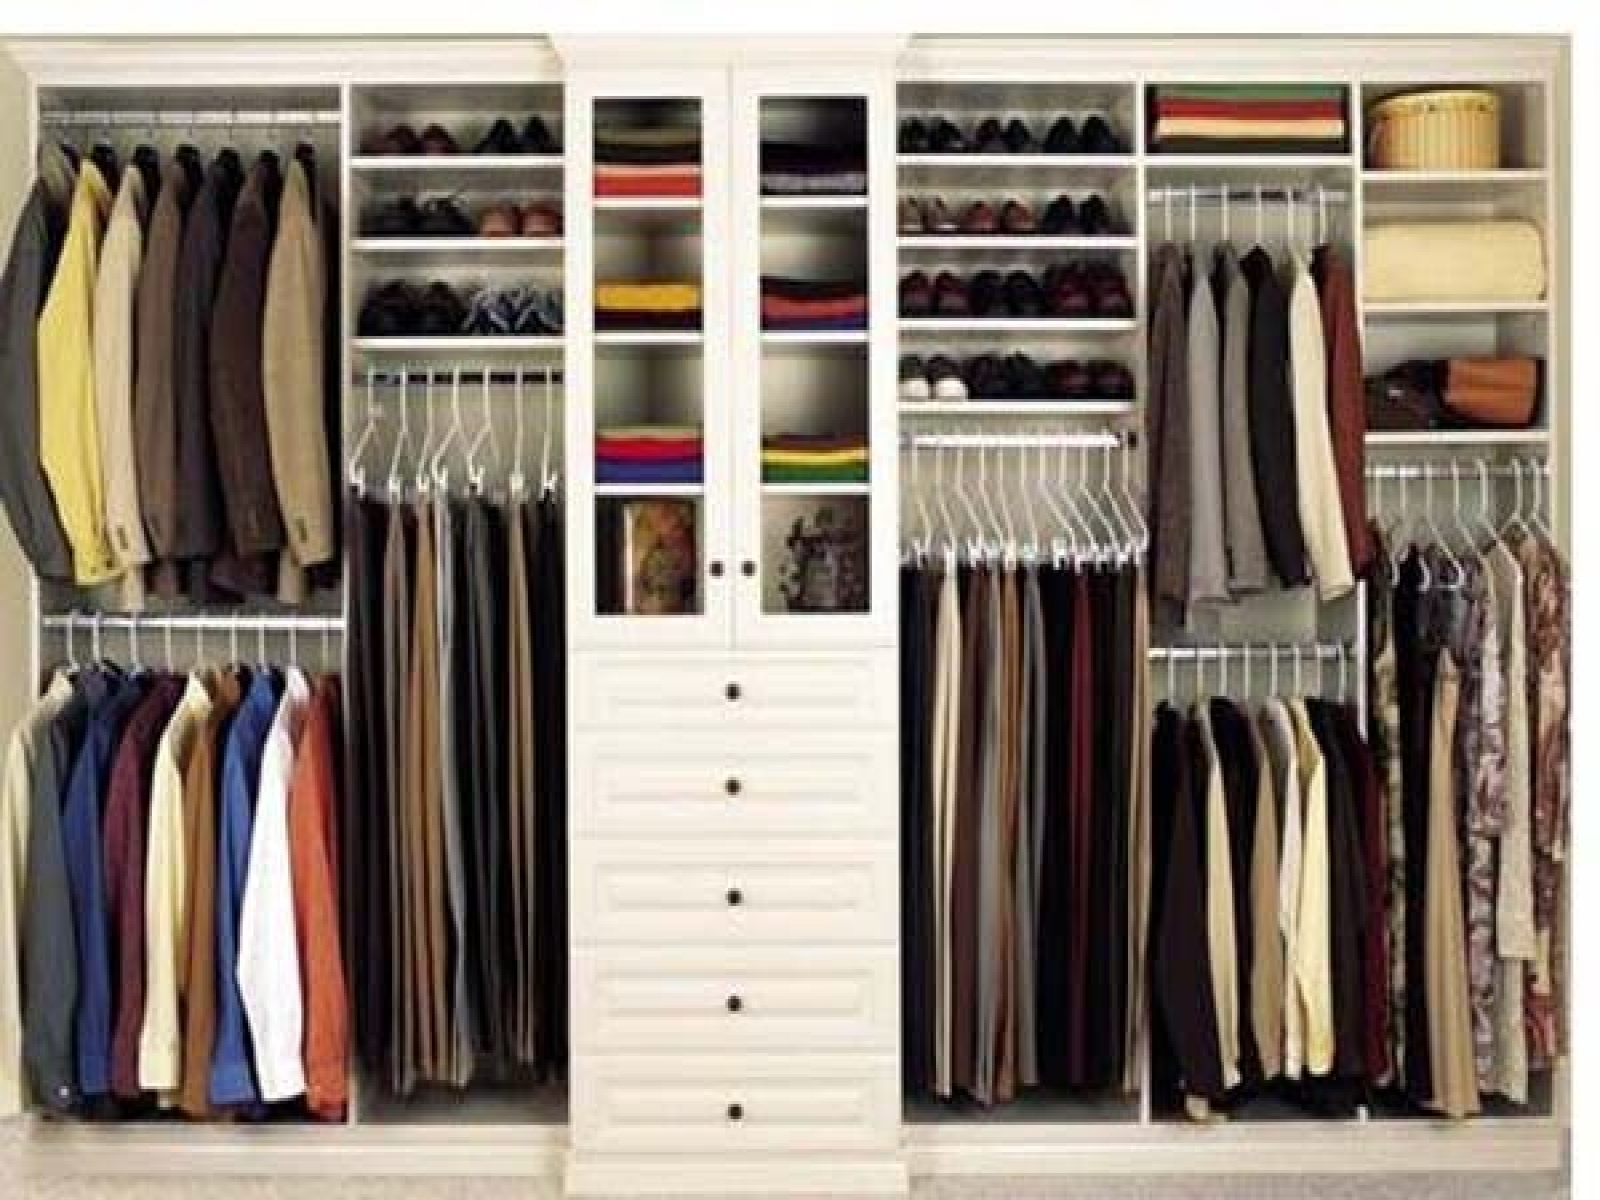 http://latinosgogreen.org/g/2018/01/ikea-closet-storage-drawers-ikea-closet-storage-walk-in-closet-ideas-ikea-standing-closet-ikea-ikea-closet-storage-closet-solutions-ikea-ikea-bedroom-cabinets-ikea-wall-mounted-storage-close.jpg